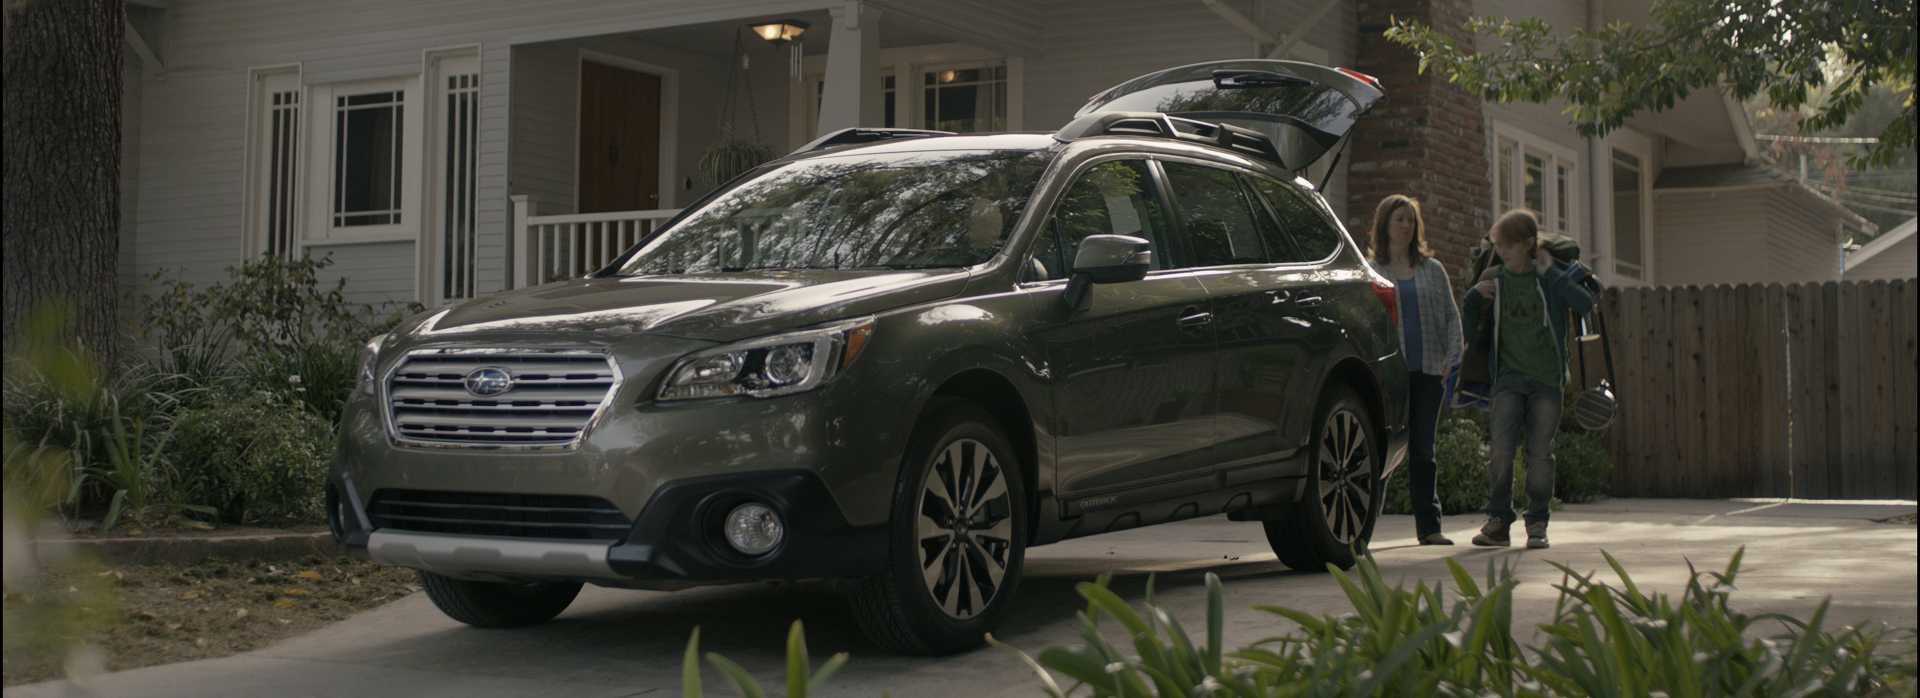 SUBARU PUTS SAFETY FIRST: NEW TELEVISION SPOTS REINFORCE BRAND'S COMMITMENT TO KEEPING DRIVERS AND THEIR FAMILIES SAFE ON THE ROAD